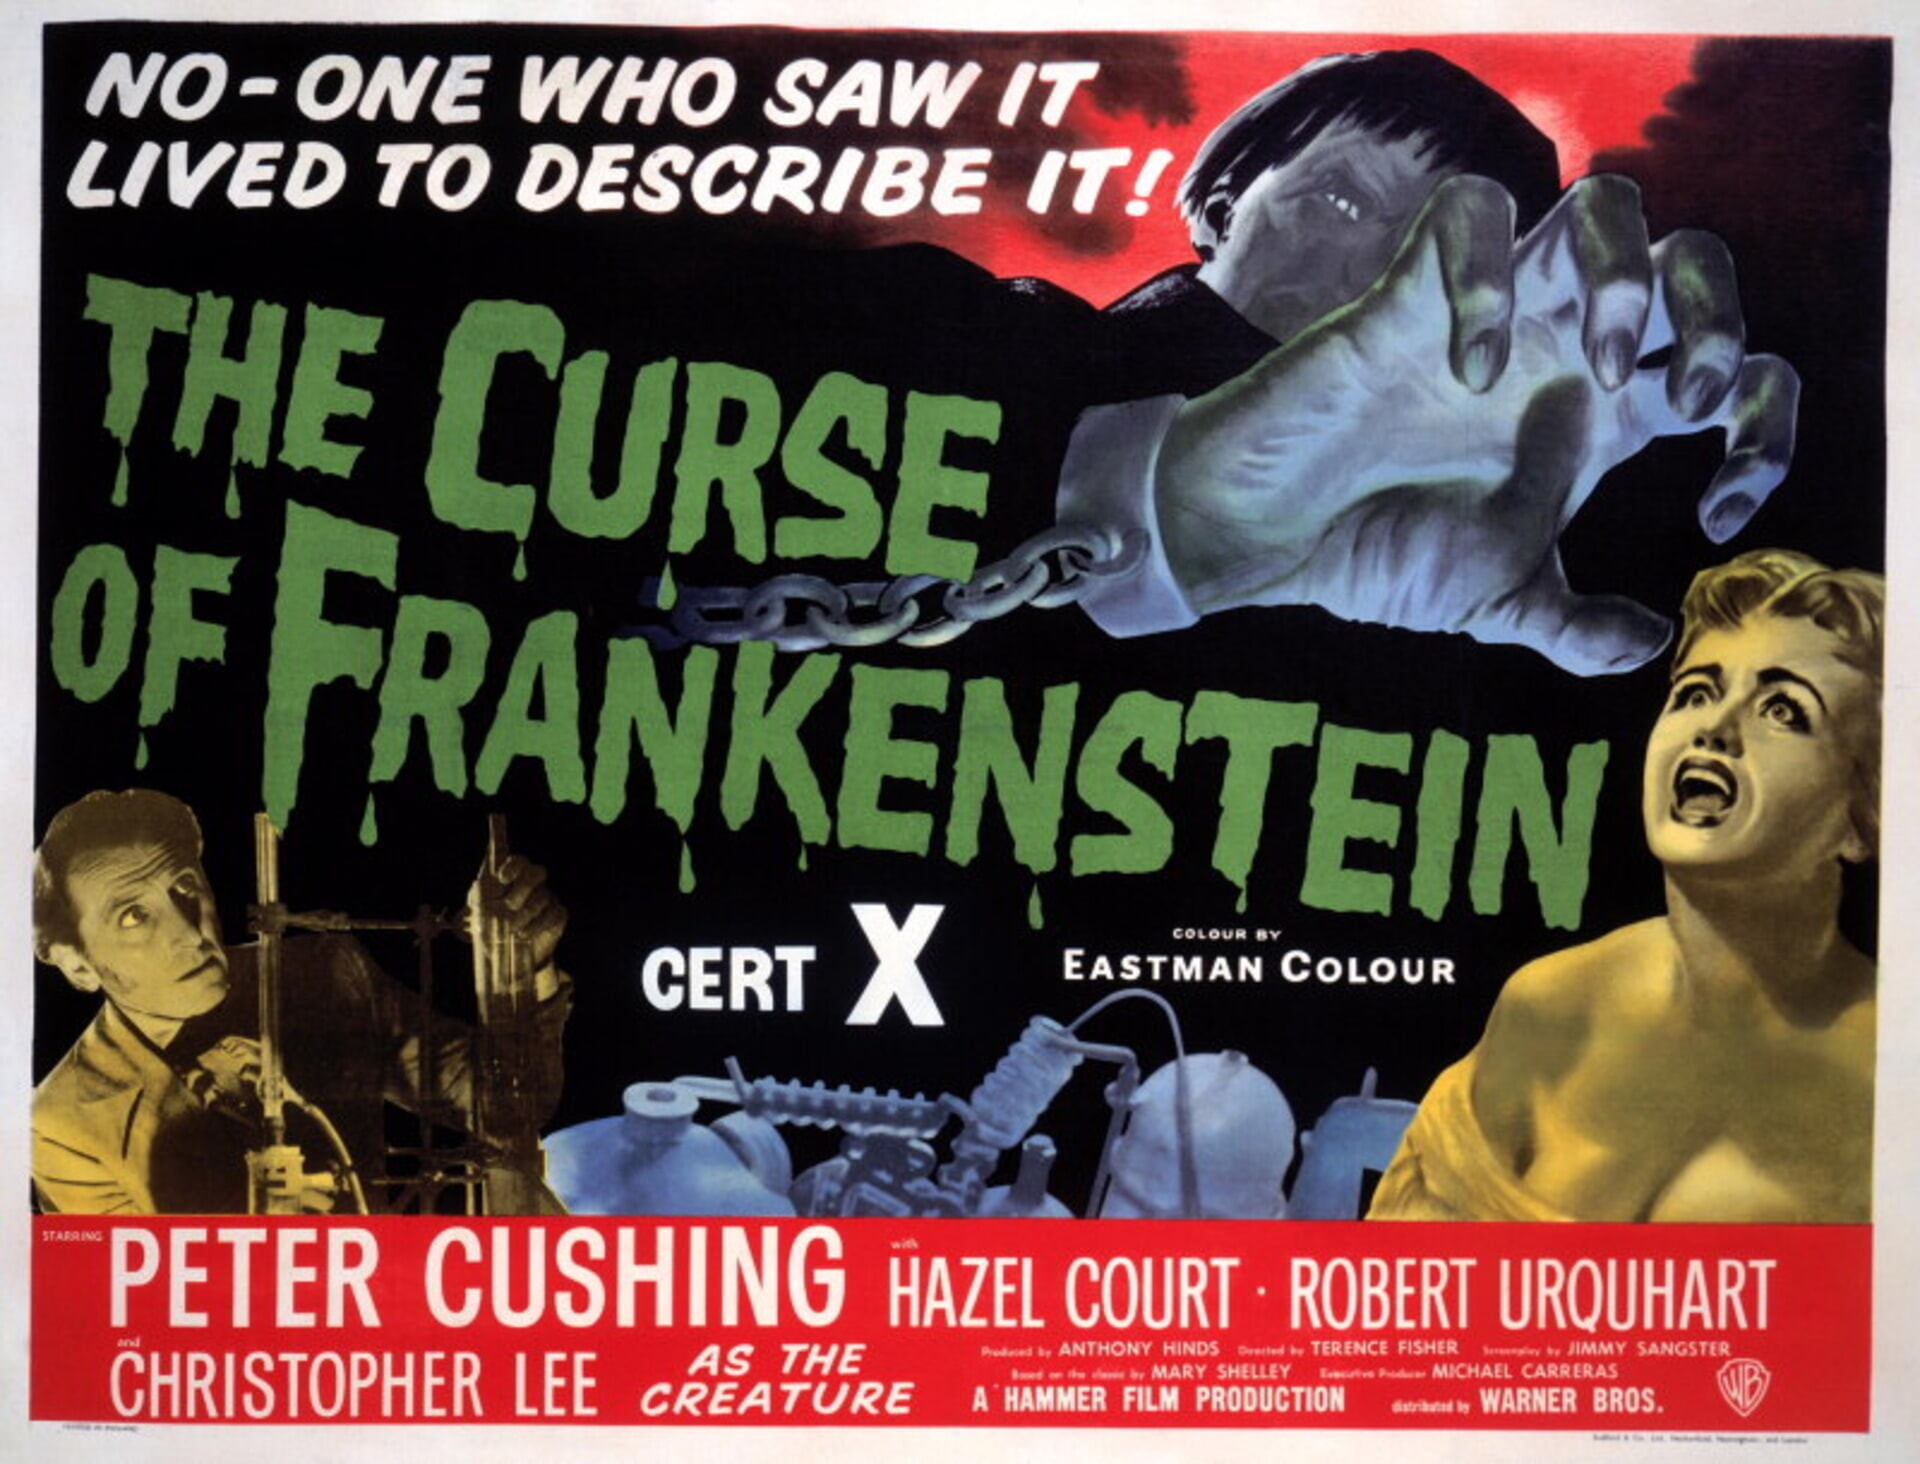 The Curse of Frankenstein - Poster 1